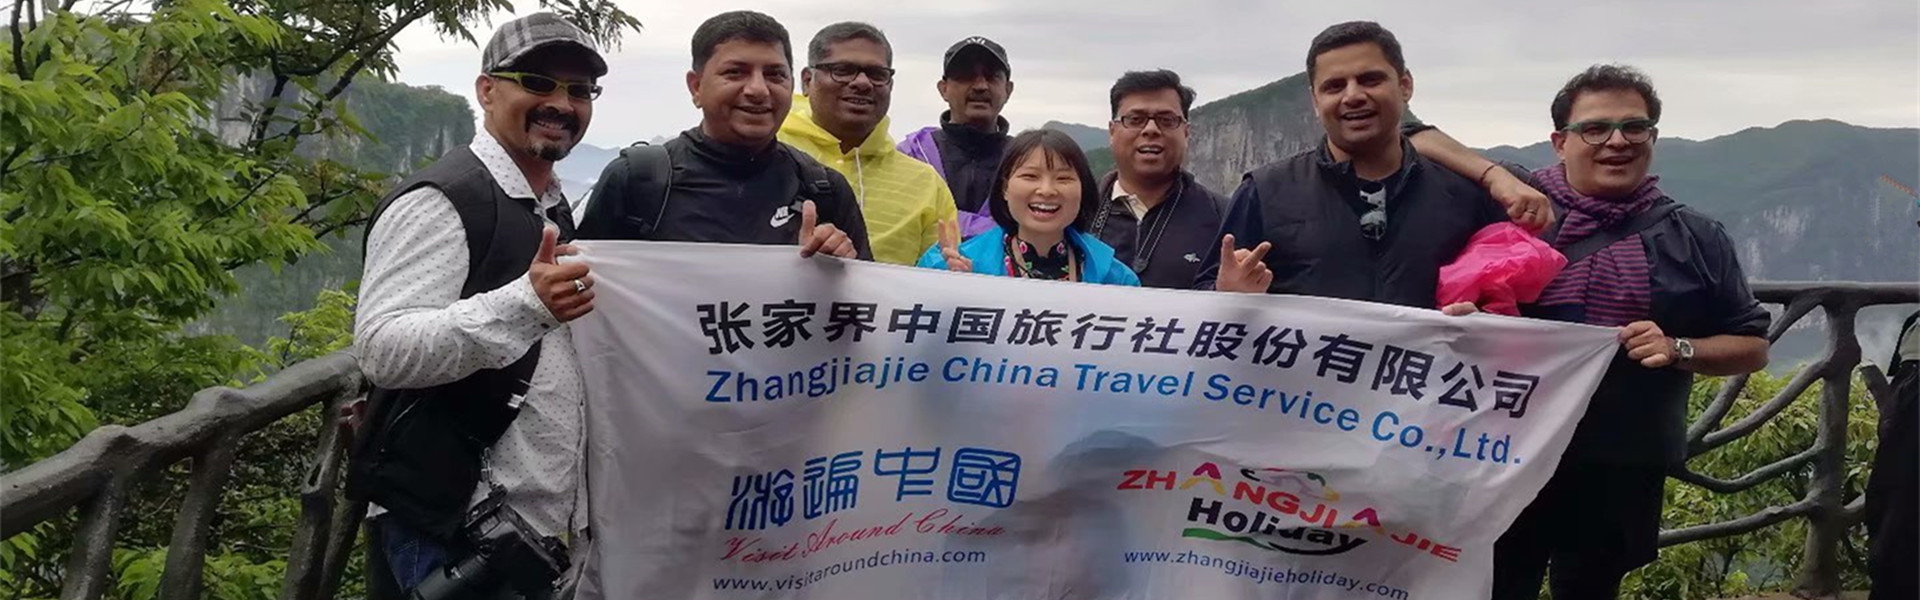 7 Days Chengdu Zhangjiajie Tour from Delhi india